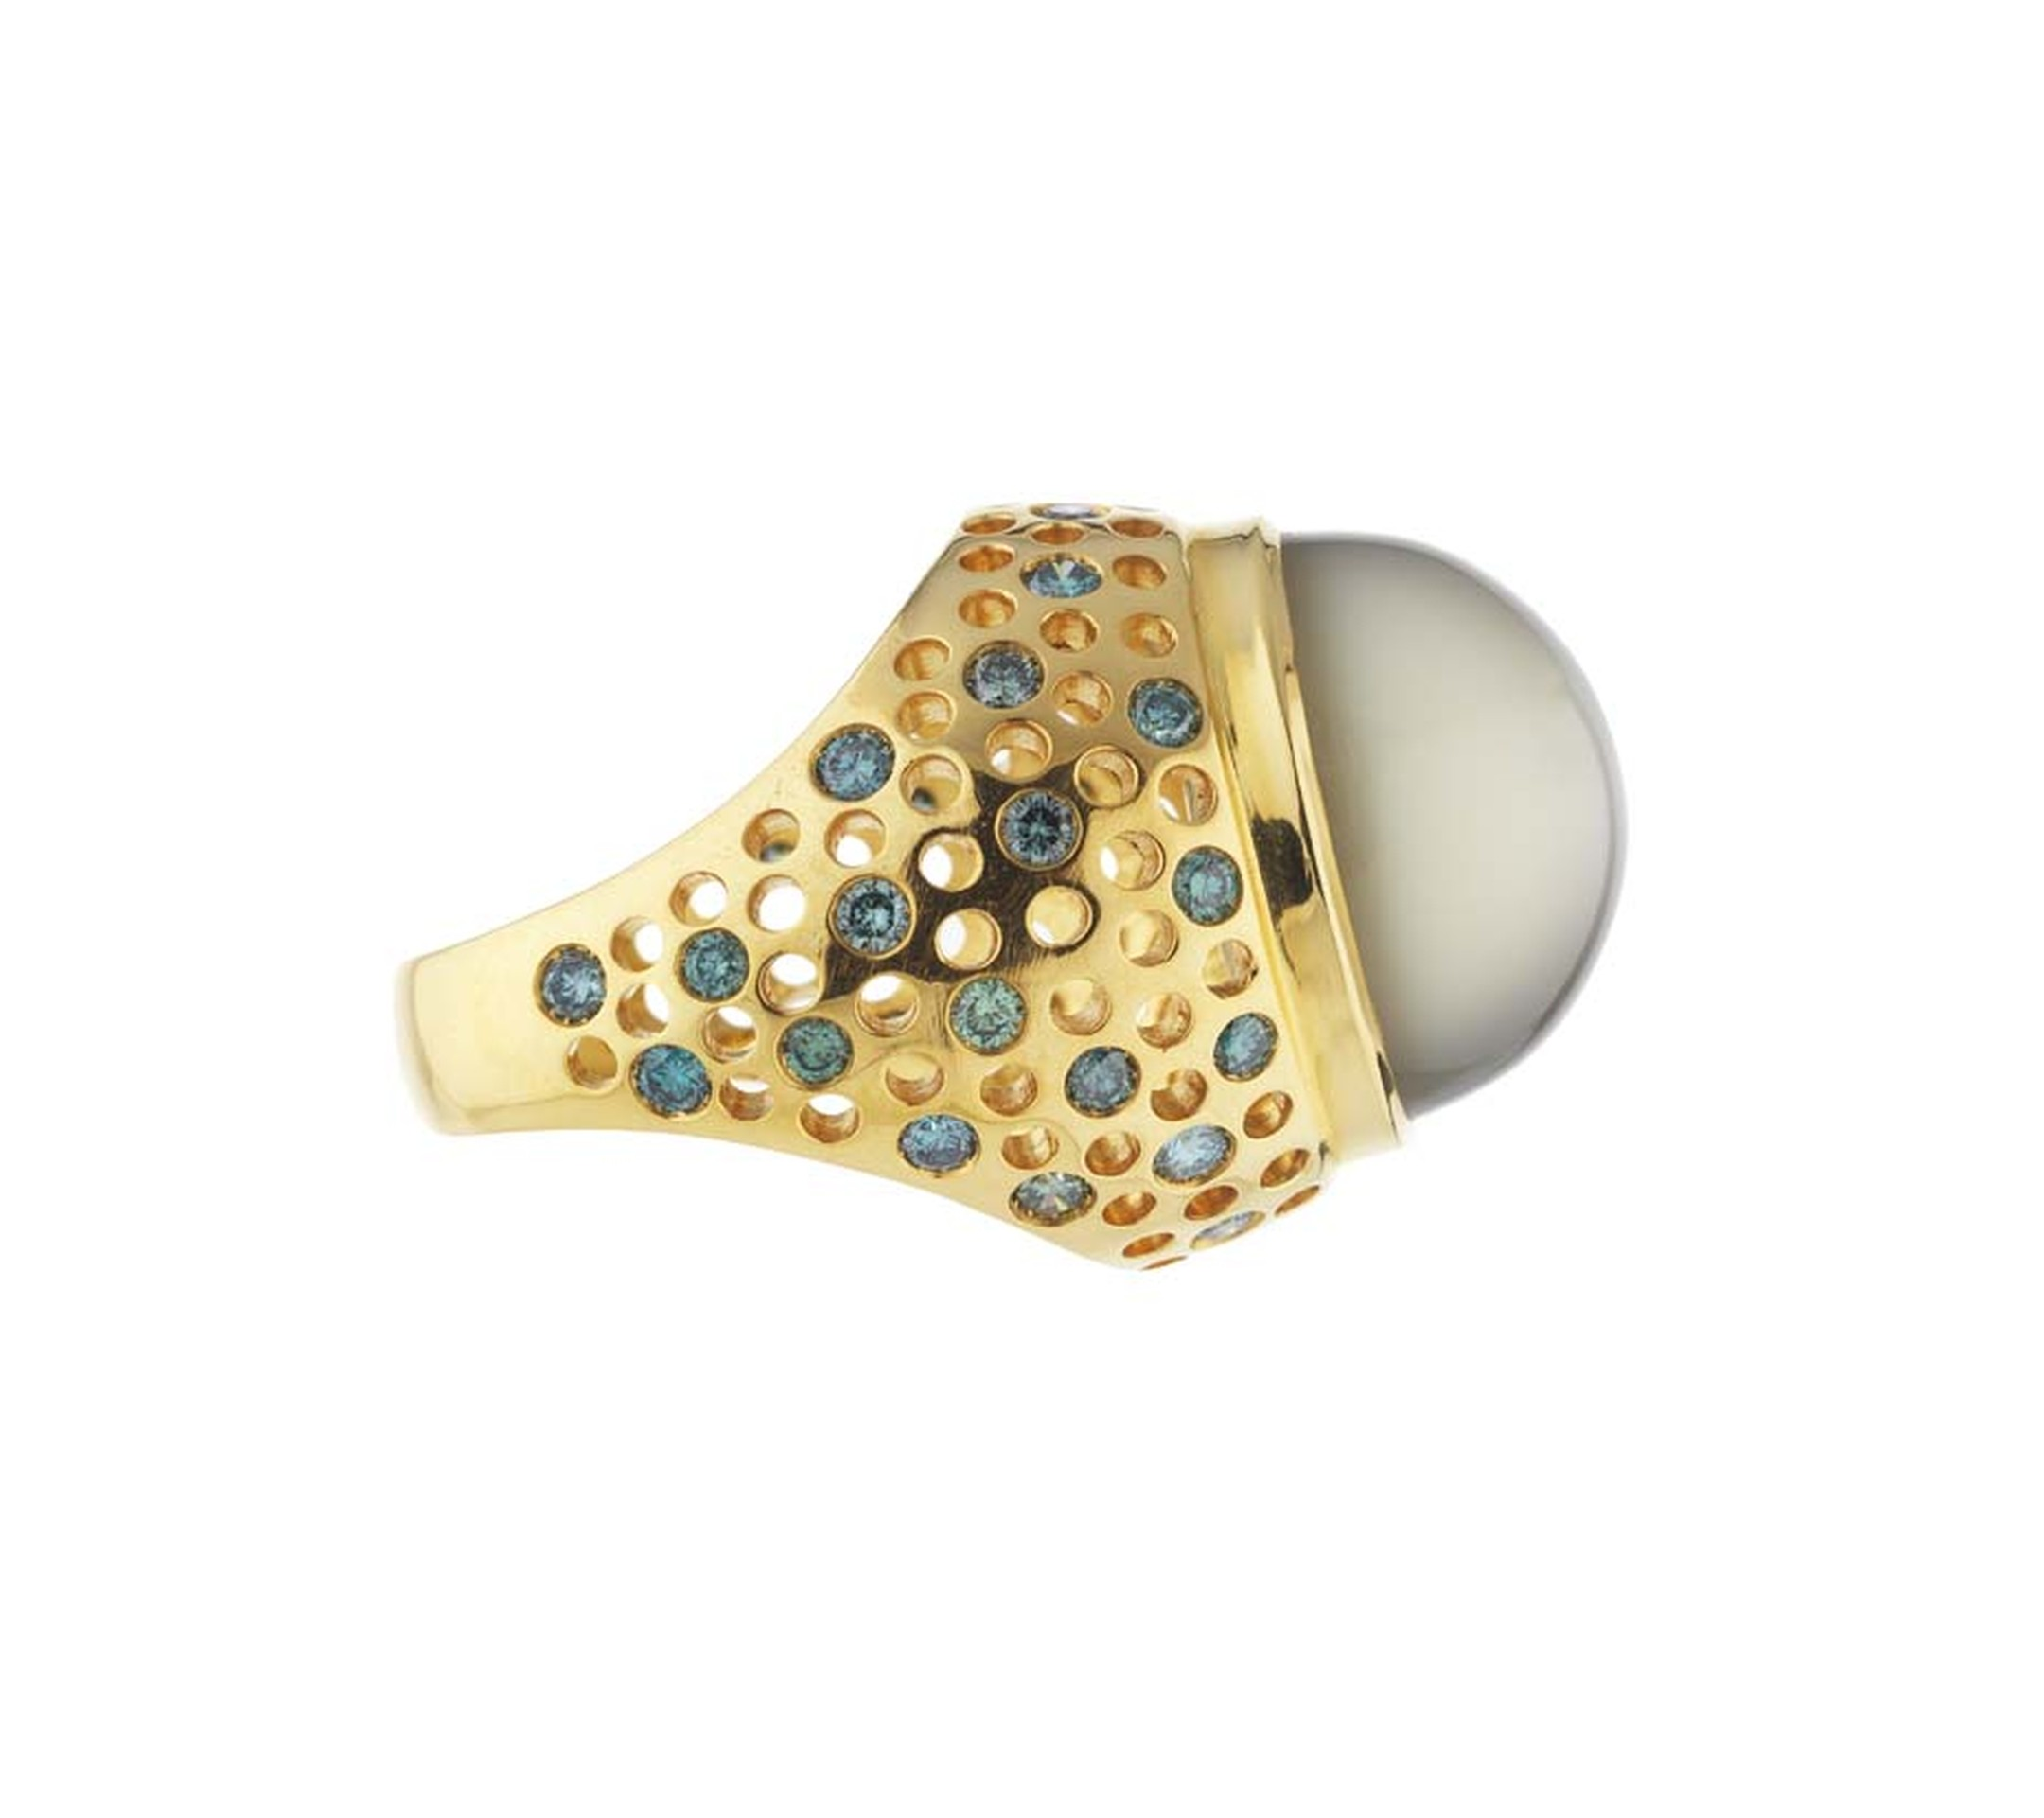 Holts London Vicious ring set with a large moonstone at its centre encircled by a thick gold band studded with bright blue and green diamonds (£4,580).